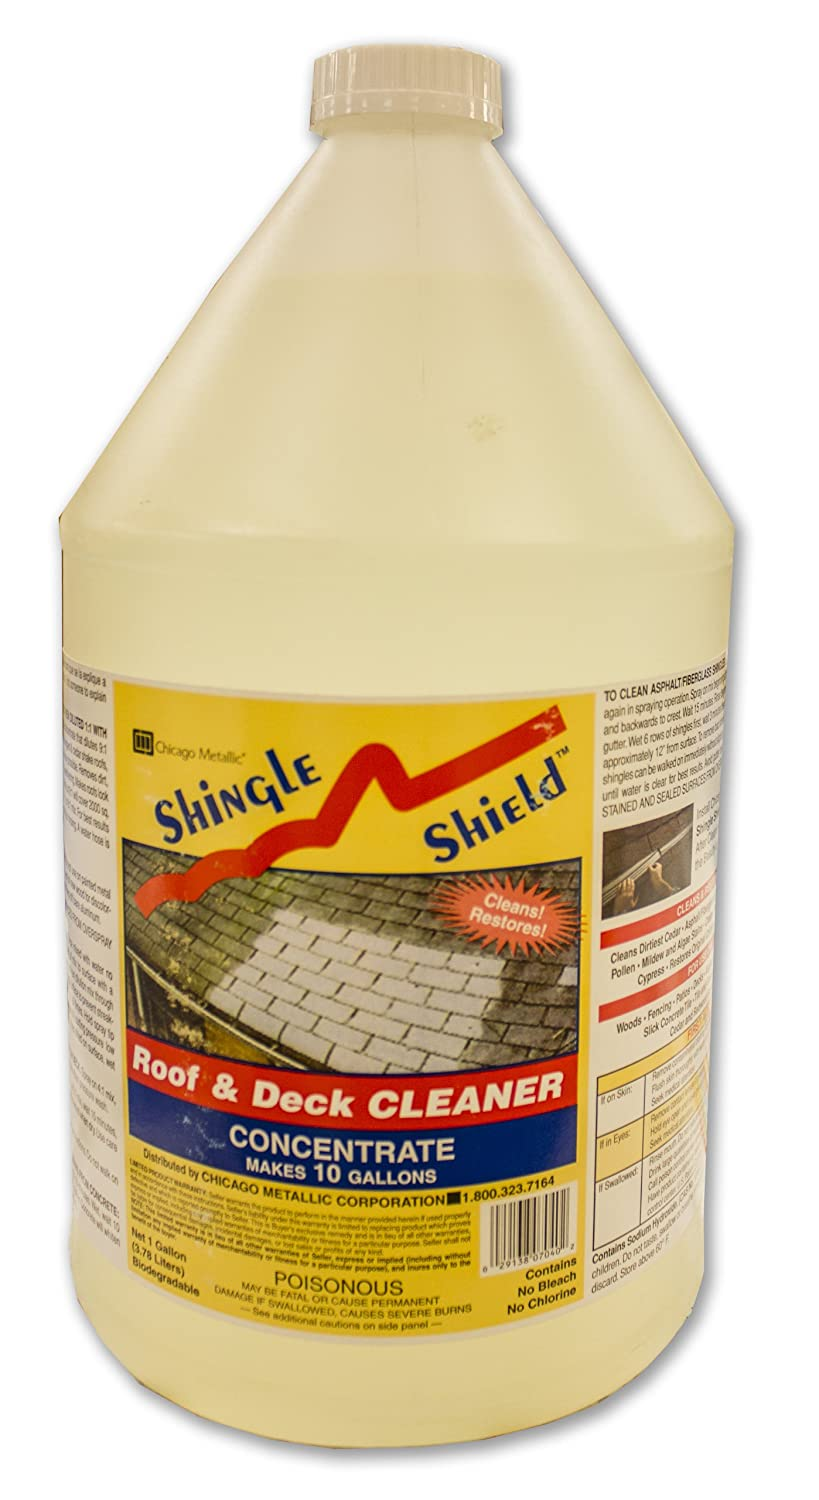 50%OFF ROOF STAIN REMOVER For Biofilm, Mold Cleaner, Algae, Moss And